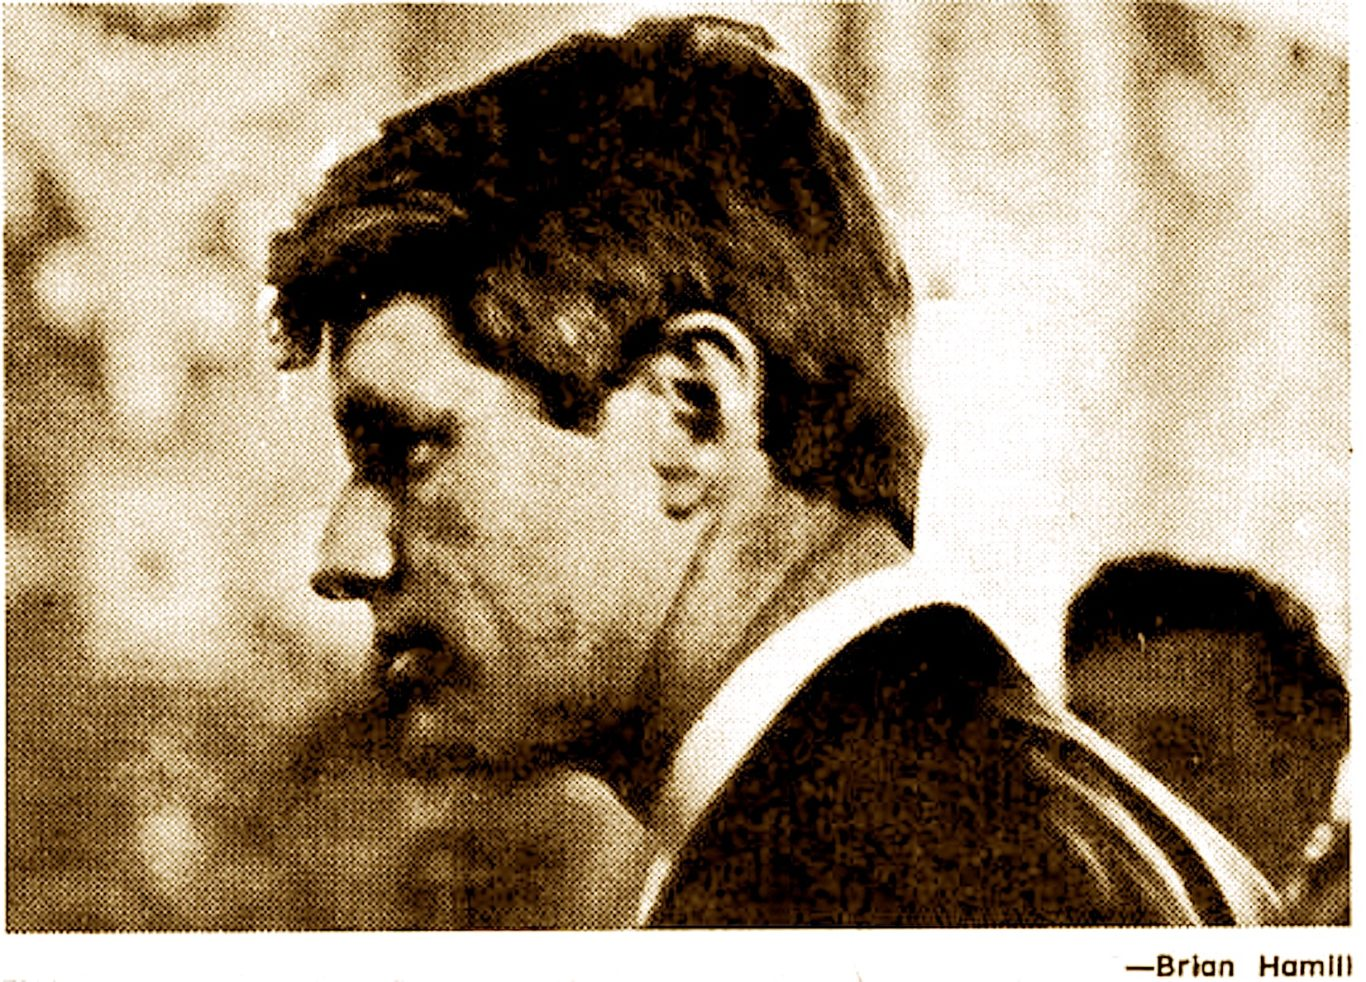 RFK, Two Minutes to Midnight: The Very Last Hurrah | The Village Voice